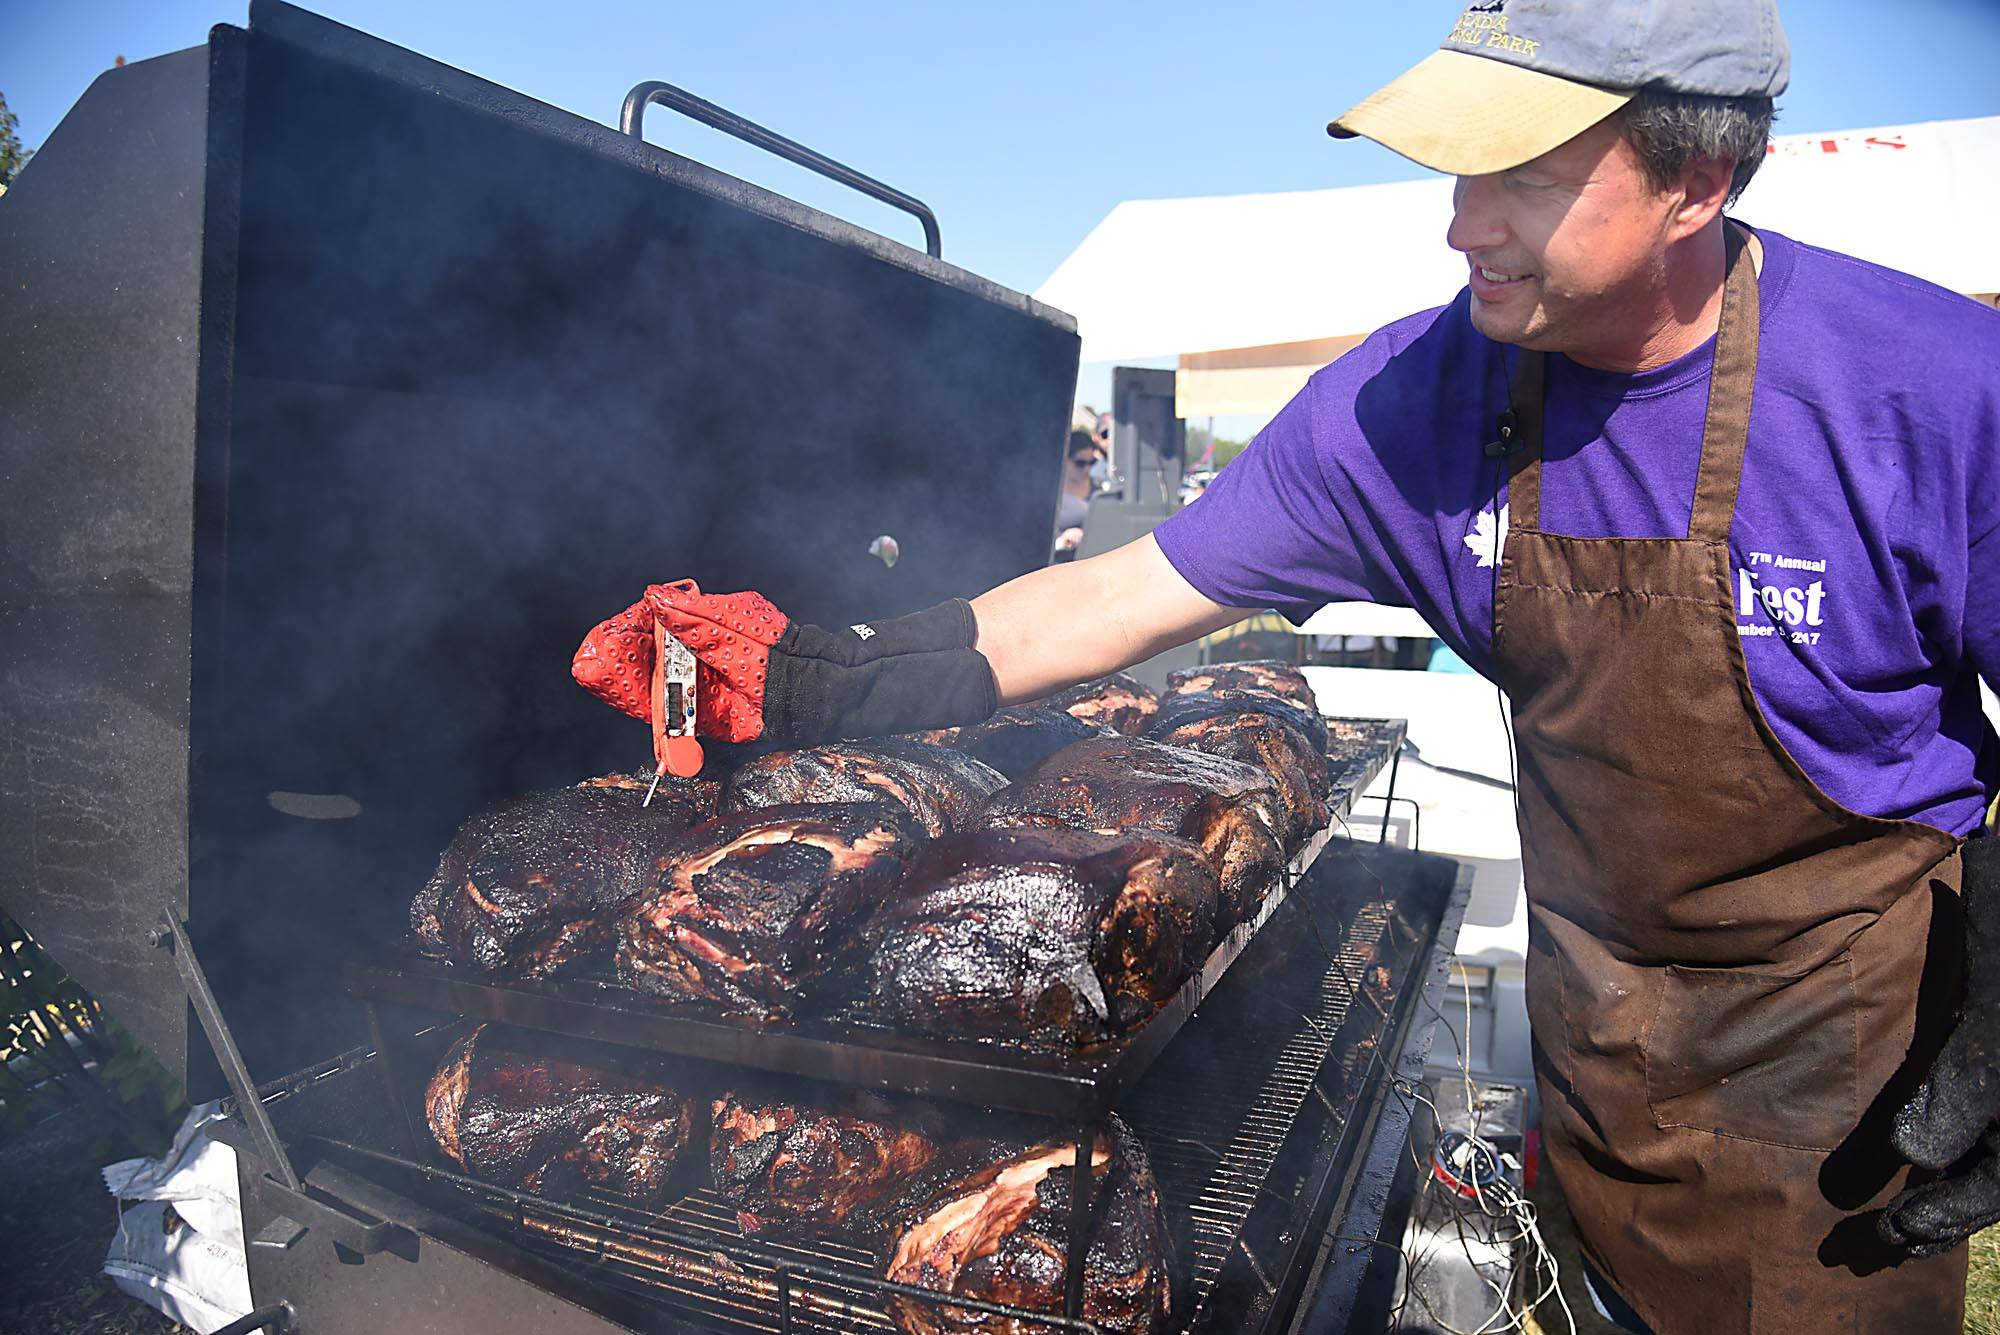 Dave Schopen checks the temperature on dozens of beef roasts Saturday at the United Fall Festival in Campton Hills. He said he started roasting about 700 pounds of meat at 4 a.m.